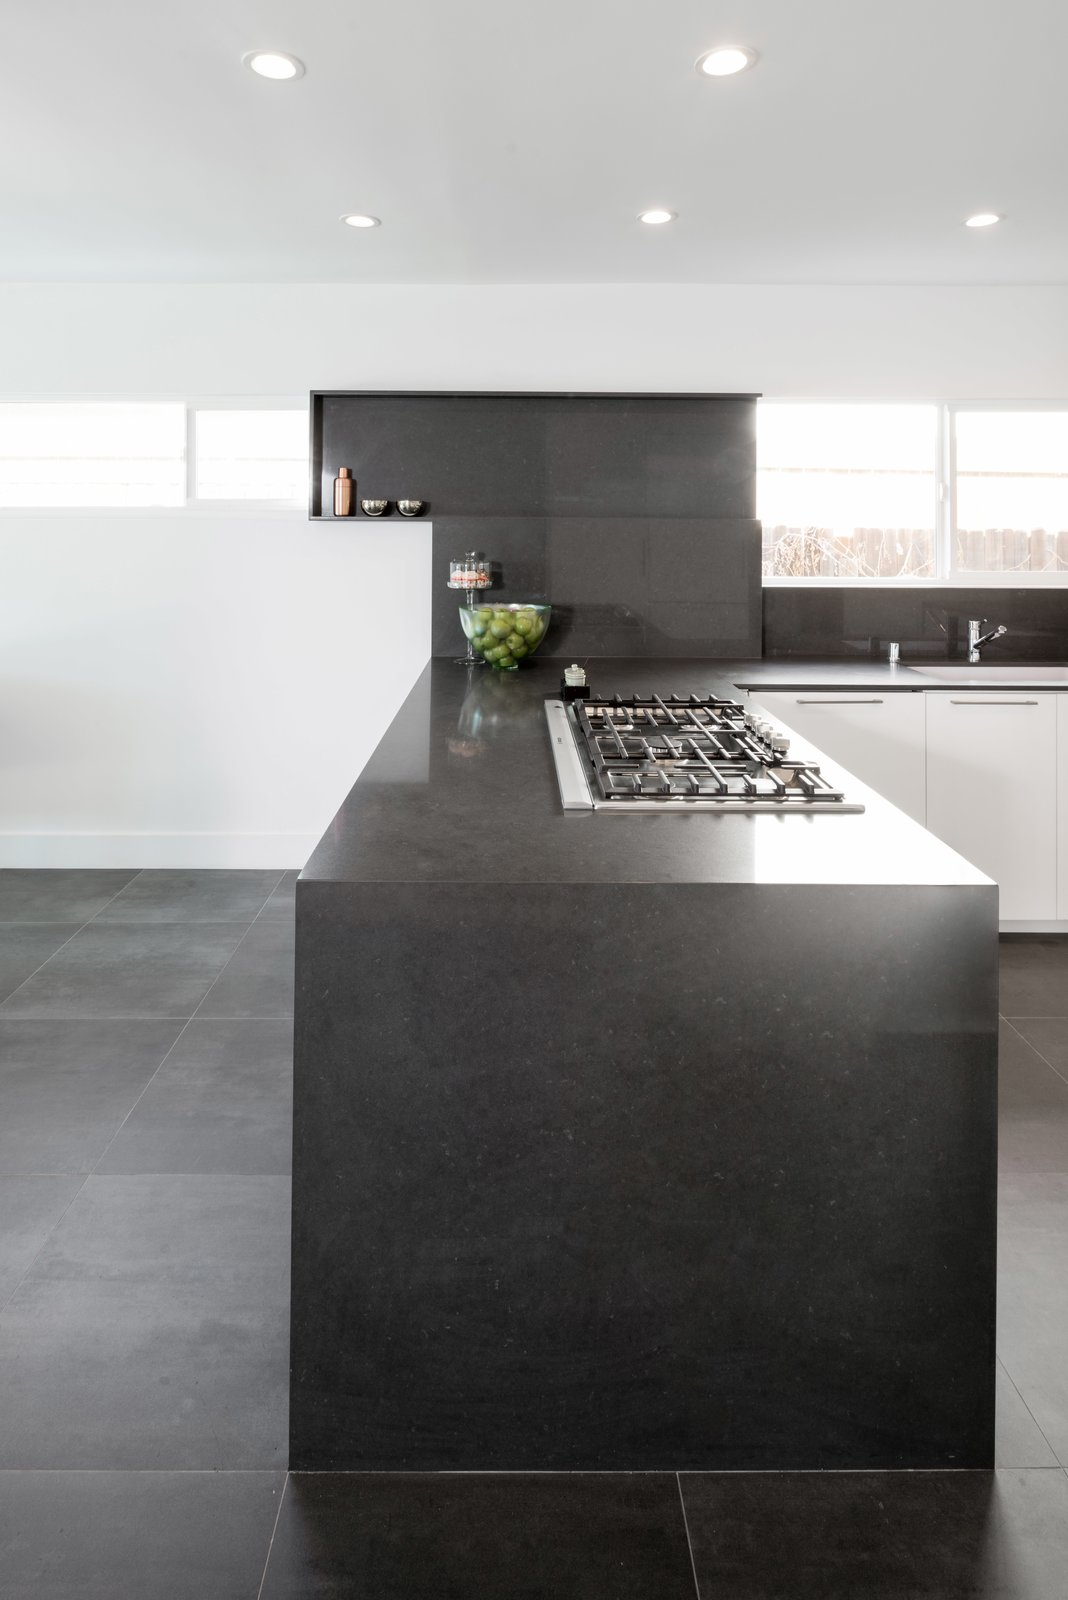 A Bosch 36  Photo 3 of 5 in Designed to Disappear: The Case For the Minimal Kitchen